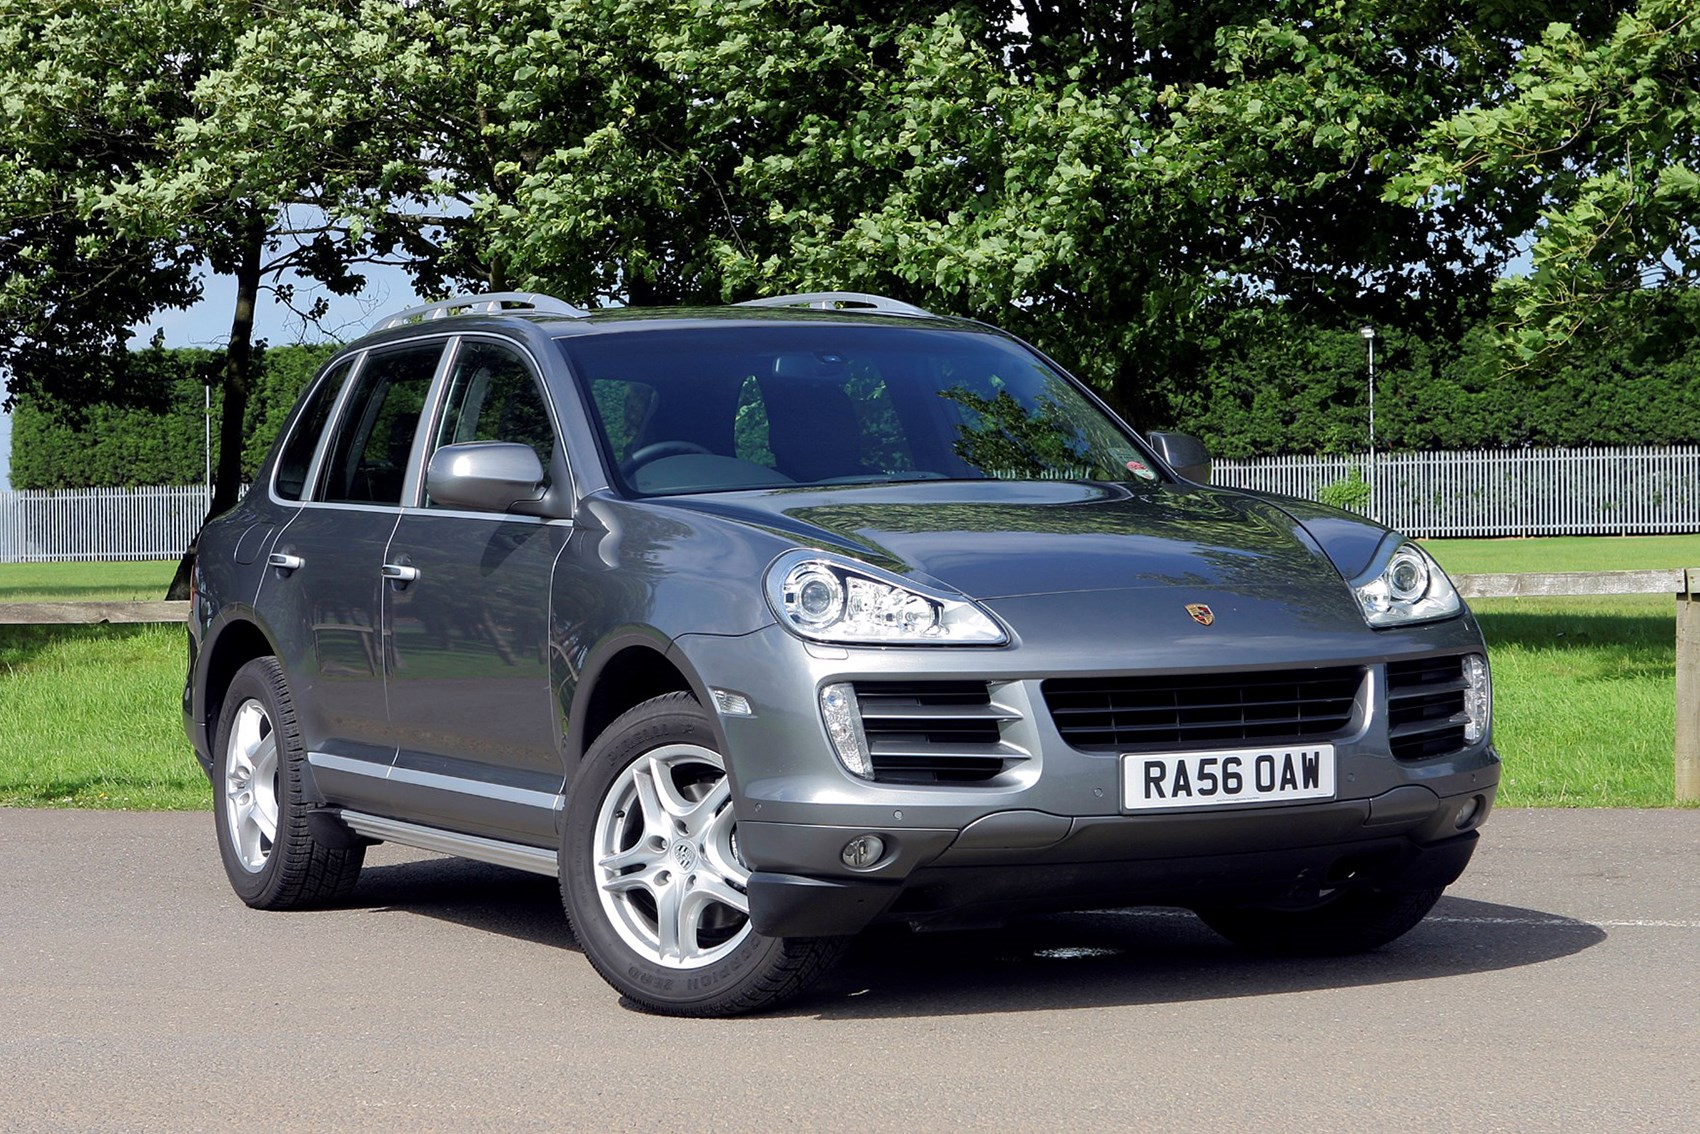 Porsche Cayenne   Luxury Cars For Less Than £10k